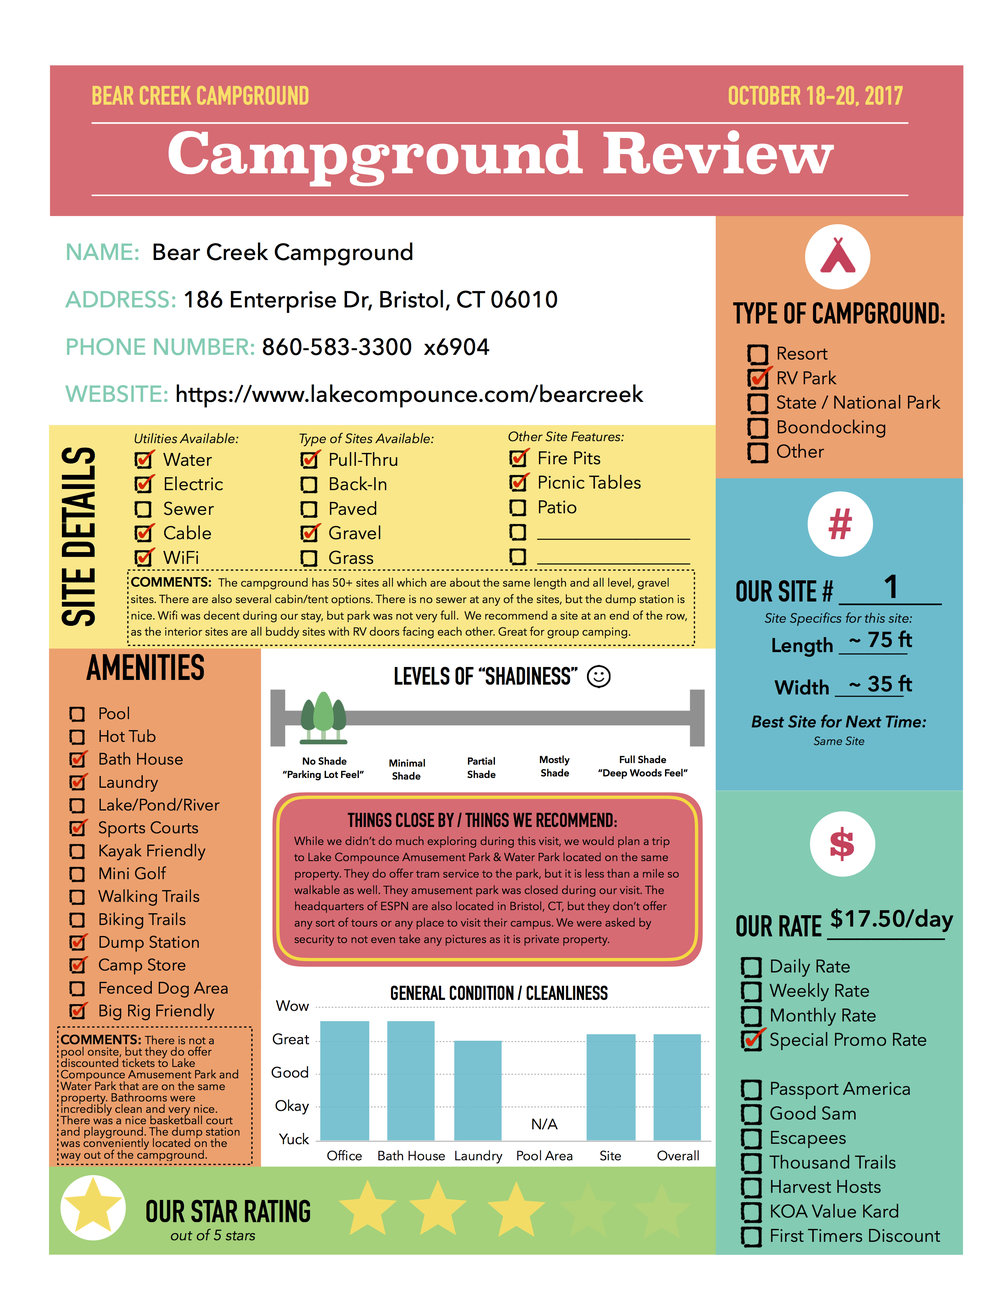 2017 Campground Review - Bear Creek Campground copy.jpg